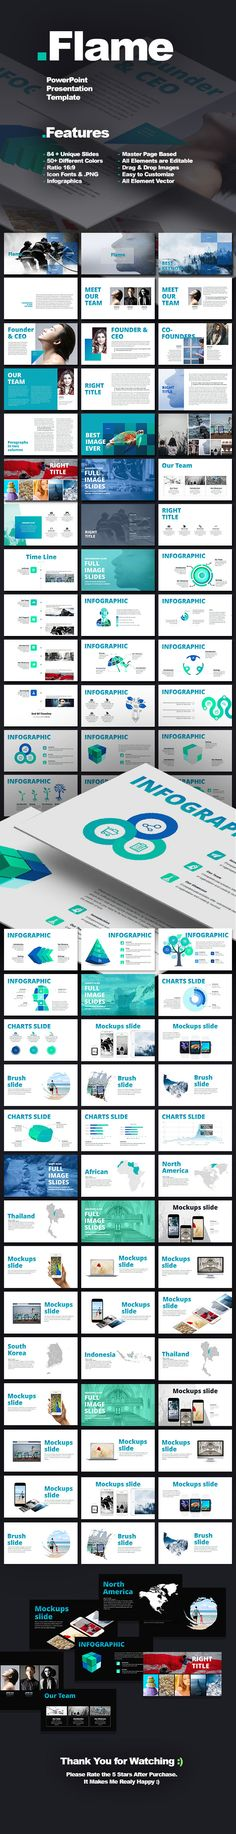 Flyover Powerpoint Presentation  Fashion Bloggers Creative And